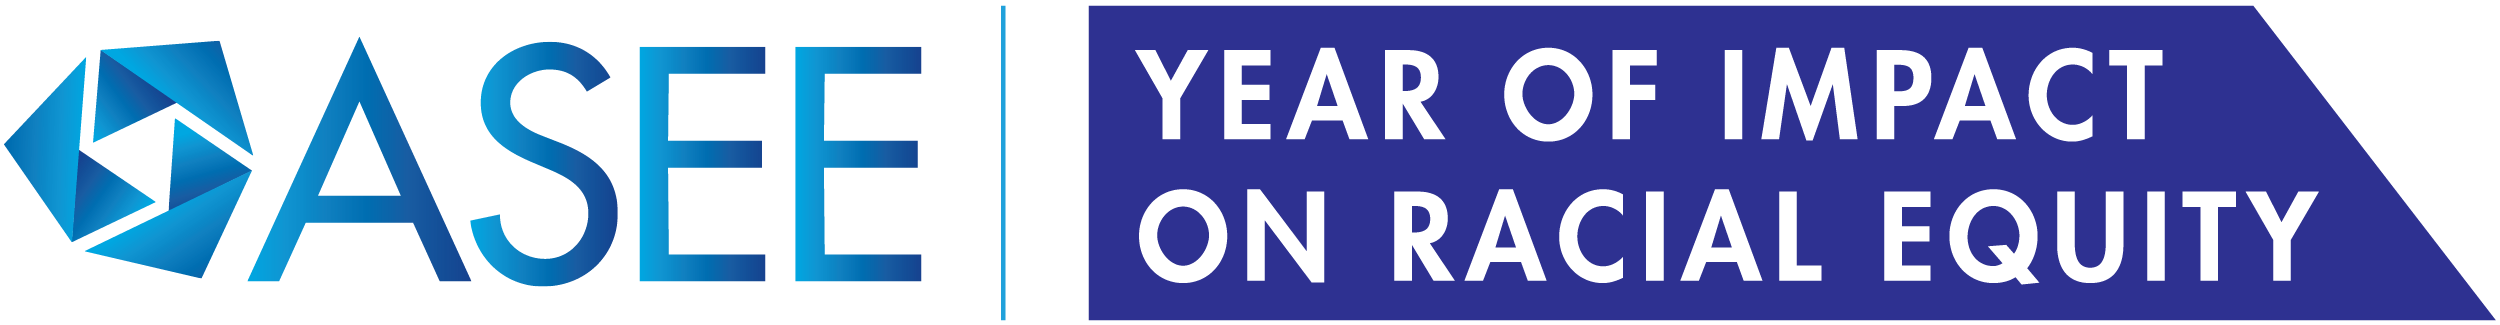 Year of Impact on Racial Equity logo